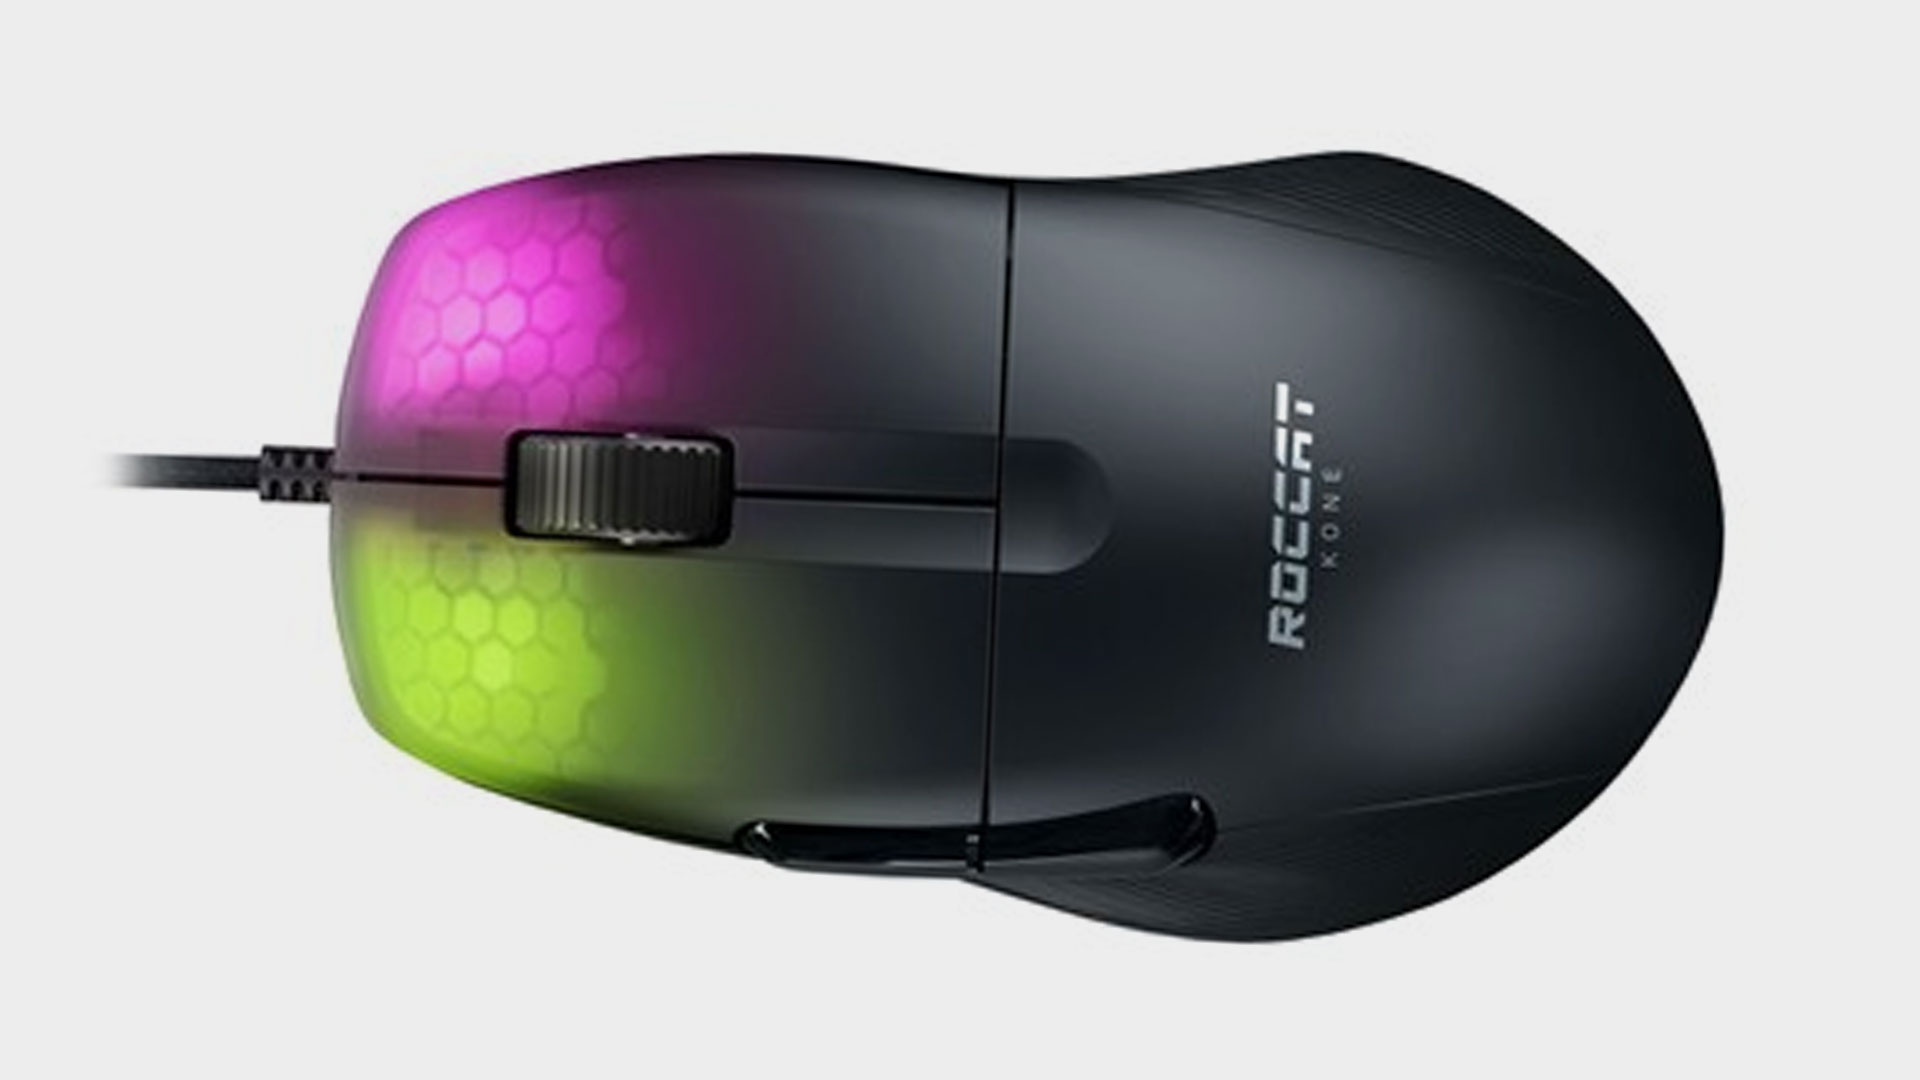 Roccat Kone Pro ultra-light wired gaming mouse